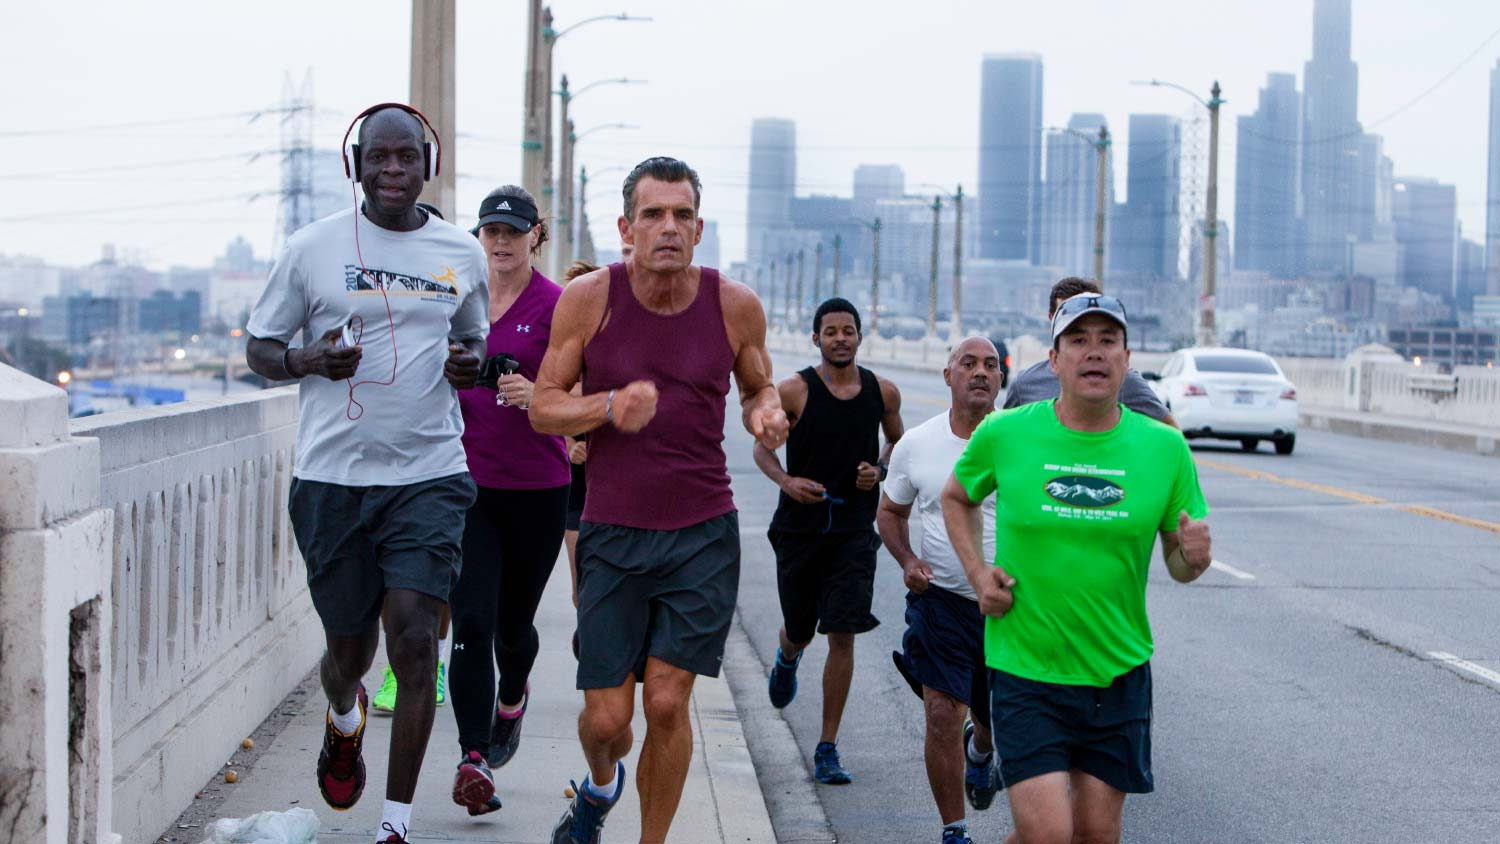 Skid Row Marathon Review – Running Towards The Homeless - OC Movie Reviews - Movie Reviews, Movie News, Documentary Reviews, Short Films, Short Film Reviews, Trailers, Movie Trailers, Interviews, film reviews, film news, hollywood, indie films, documentaries